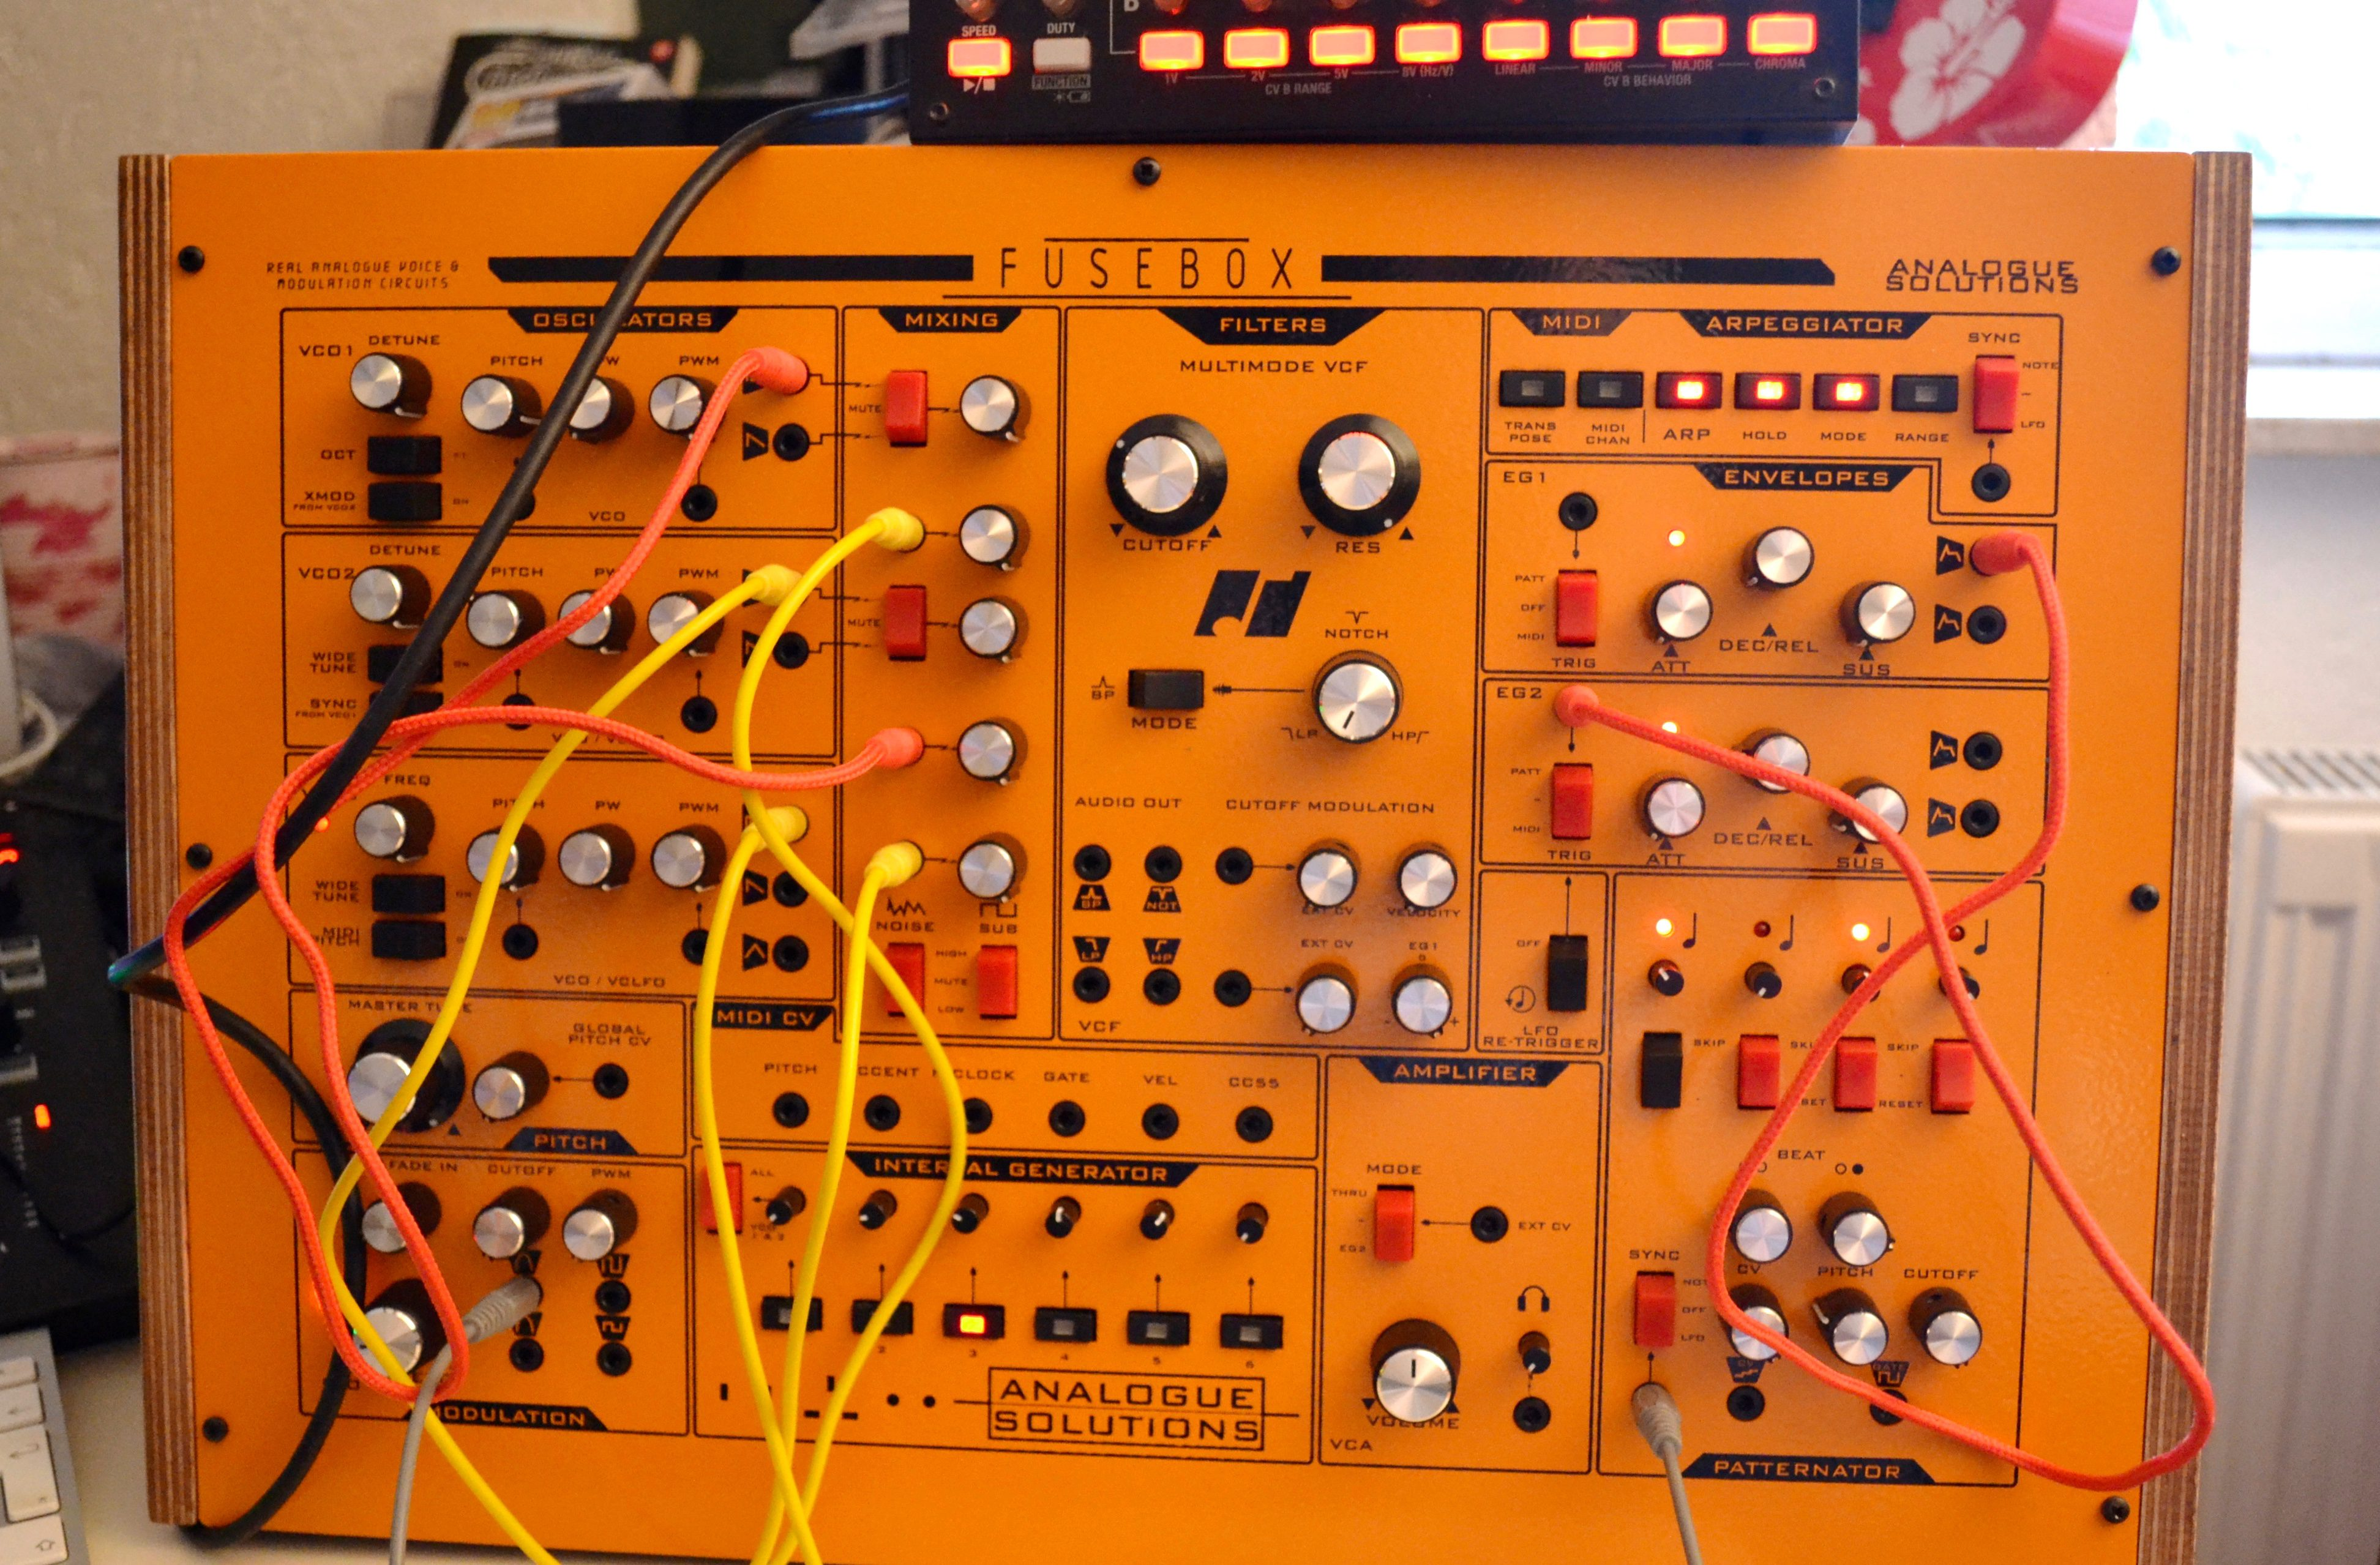 Fuse Box Orange | Wiring Diagram Fuse Box Charged Backpack Review on evolve review, grand theft auto v review, assassin's creed unity review, far cry 4 review, halo 4 review, binary domain review, escape dead island review, dead rising 3 review, the evil within review, playstation all-stars battle royale review, infamous second son review, comedy central review, battlefield 4 review, bloodborne review, bioshock infinite review, tomb raider review, crysis 3 review, thief review,